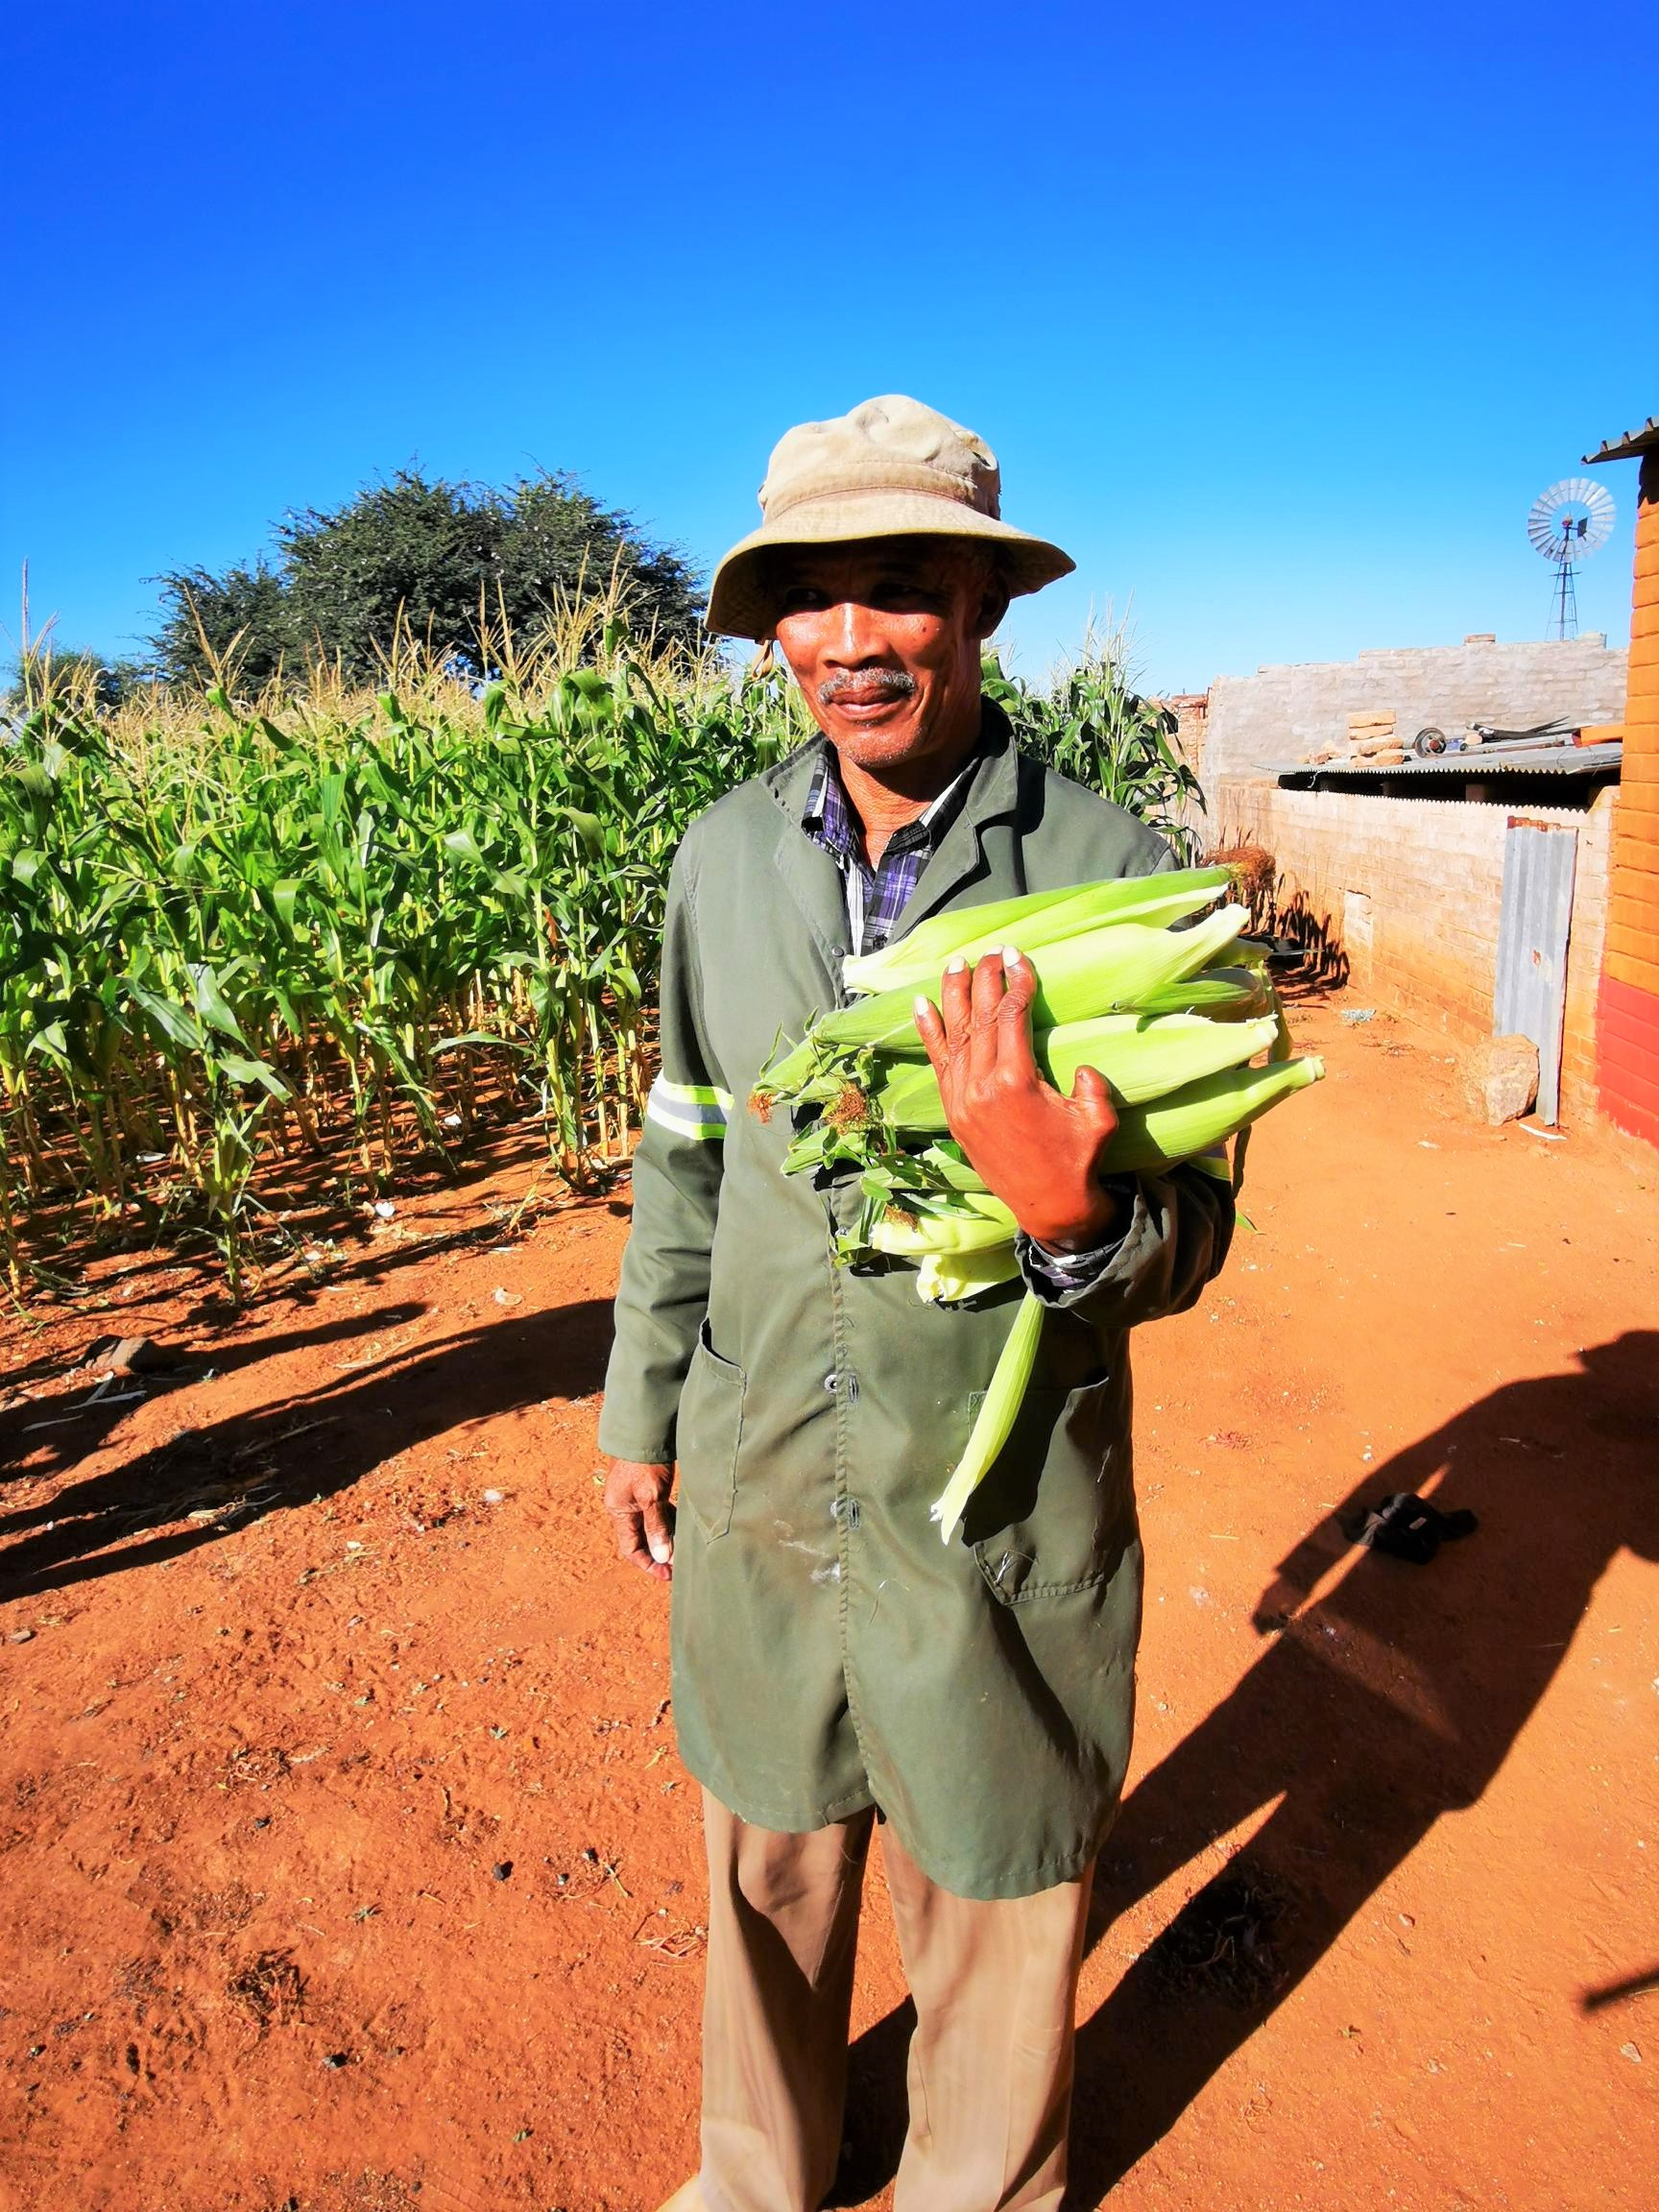 Crop producing areas records average yields